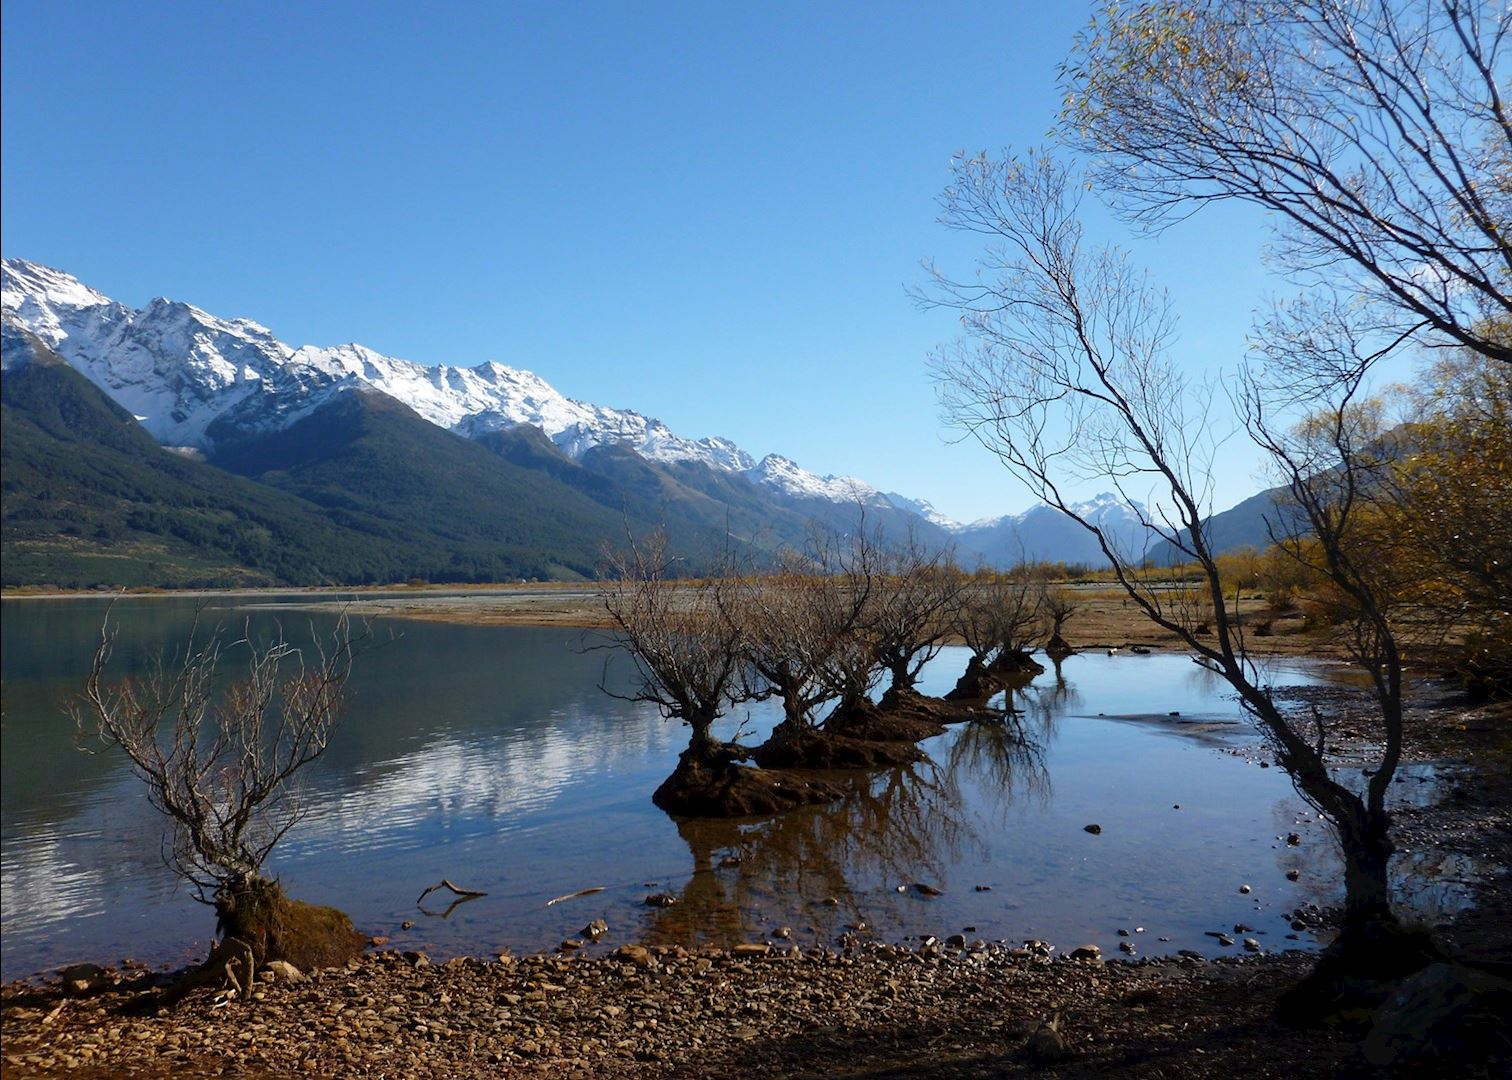 Glenorchy New Zealand  City pictures : ... jetty glenorchy new zealand kinloch jetty glenorchy new zealand